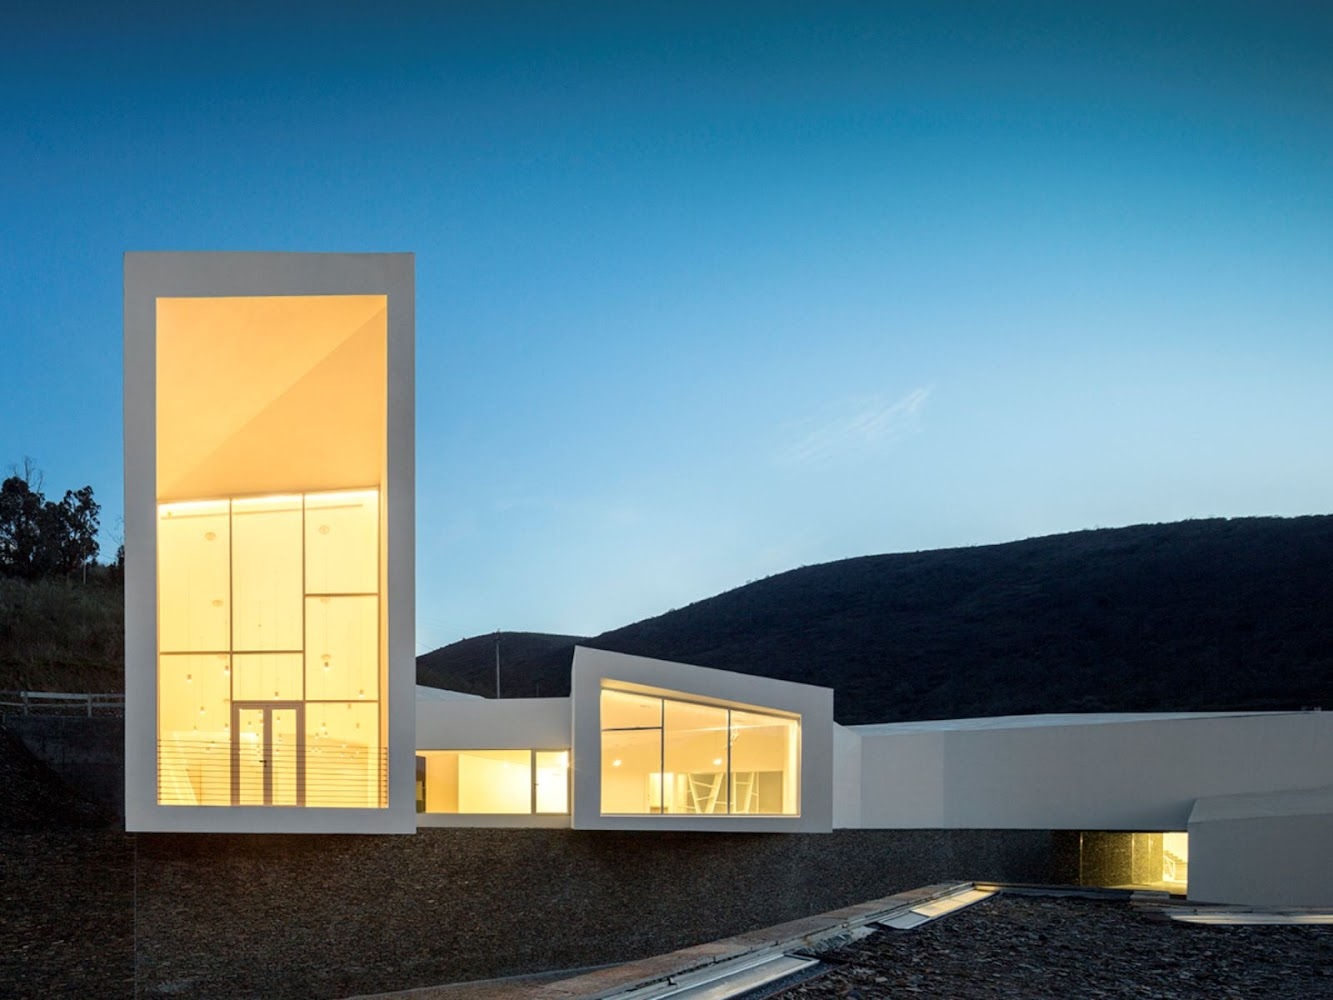 7170 Pocinho, Portogallo: Rowing High Performance Centre by Alvaro Andrade